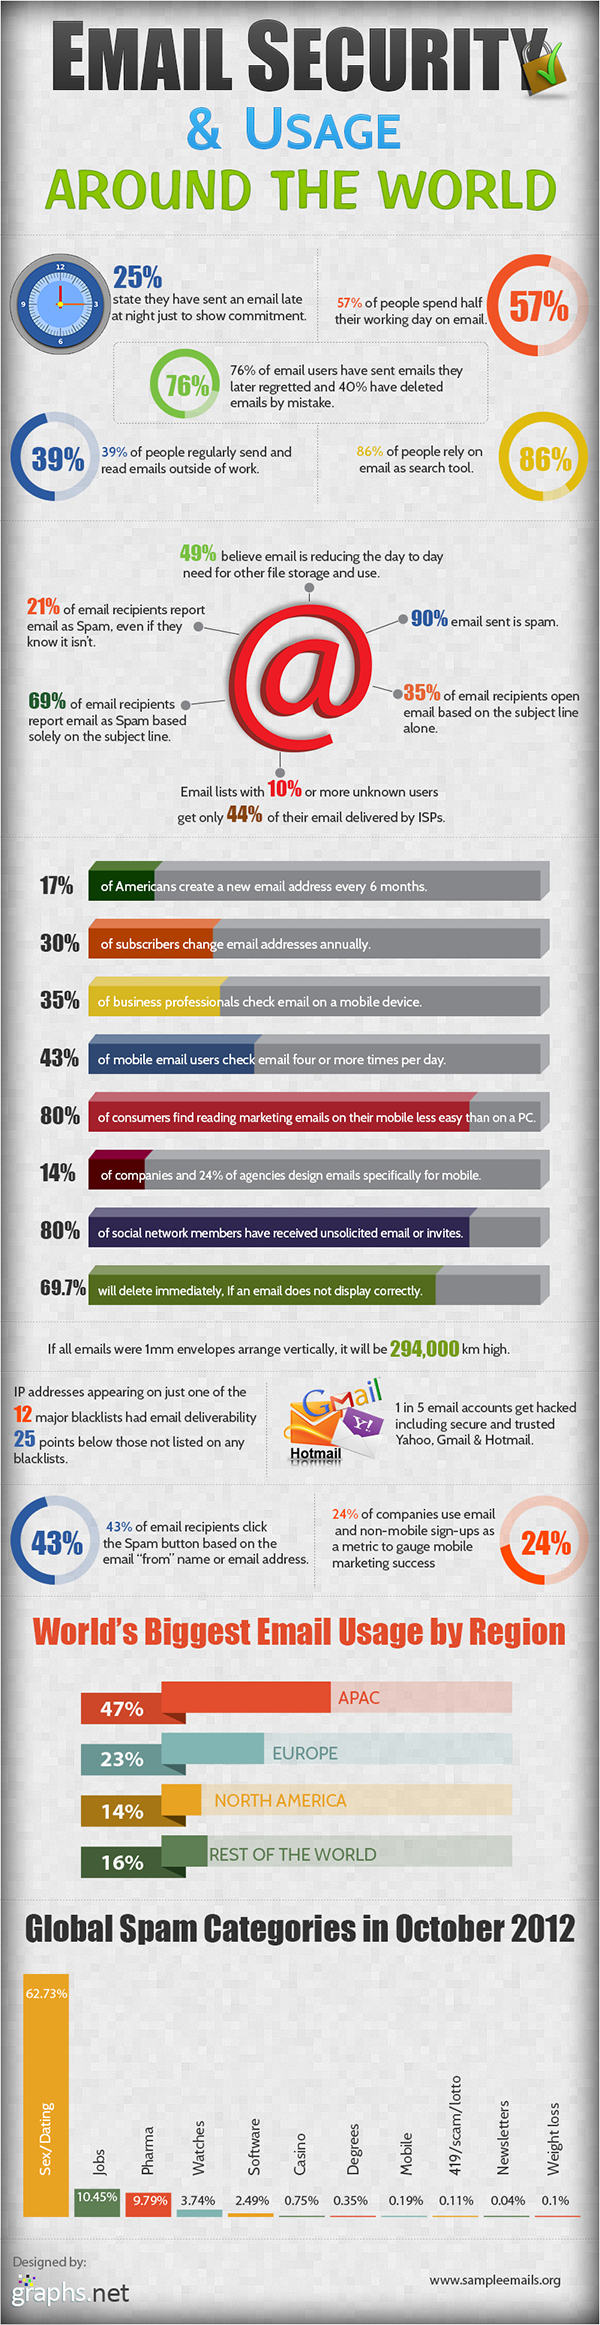 Email Security Usage Around the World INFOGRAPHIC